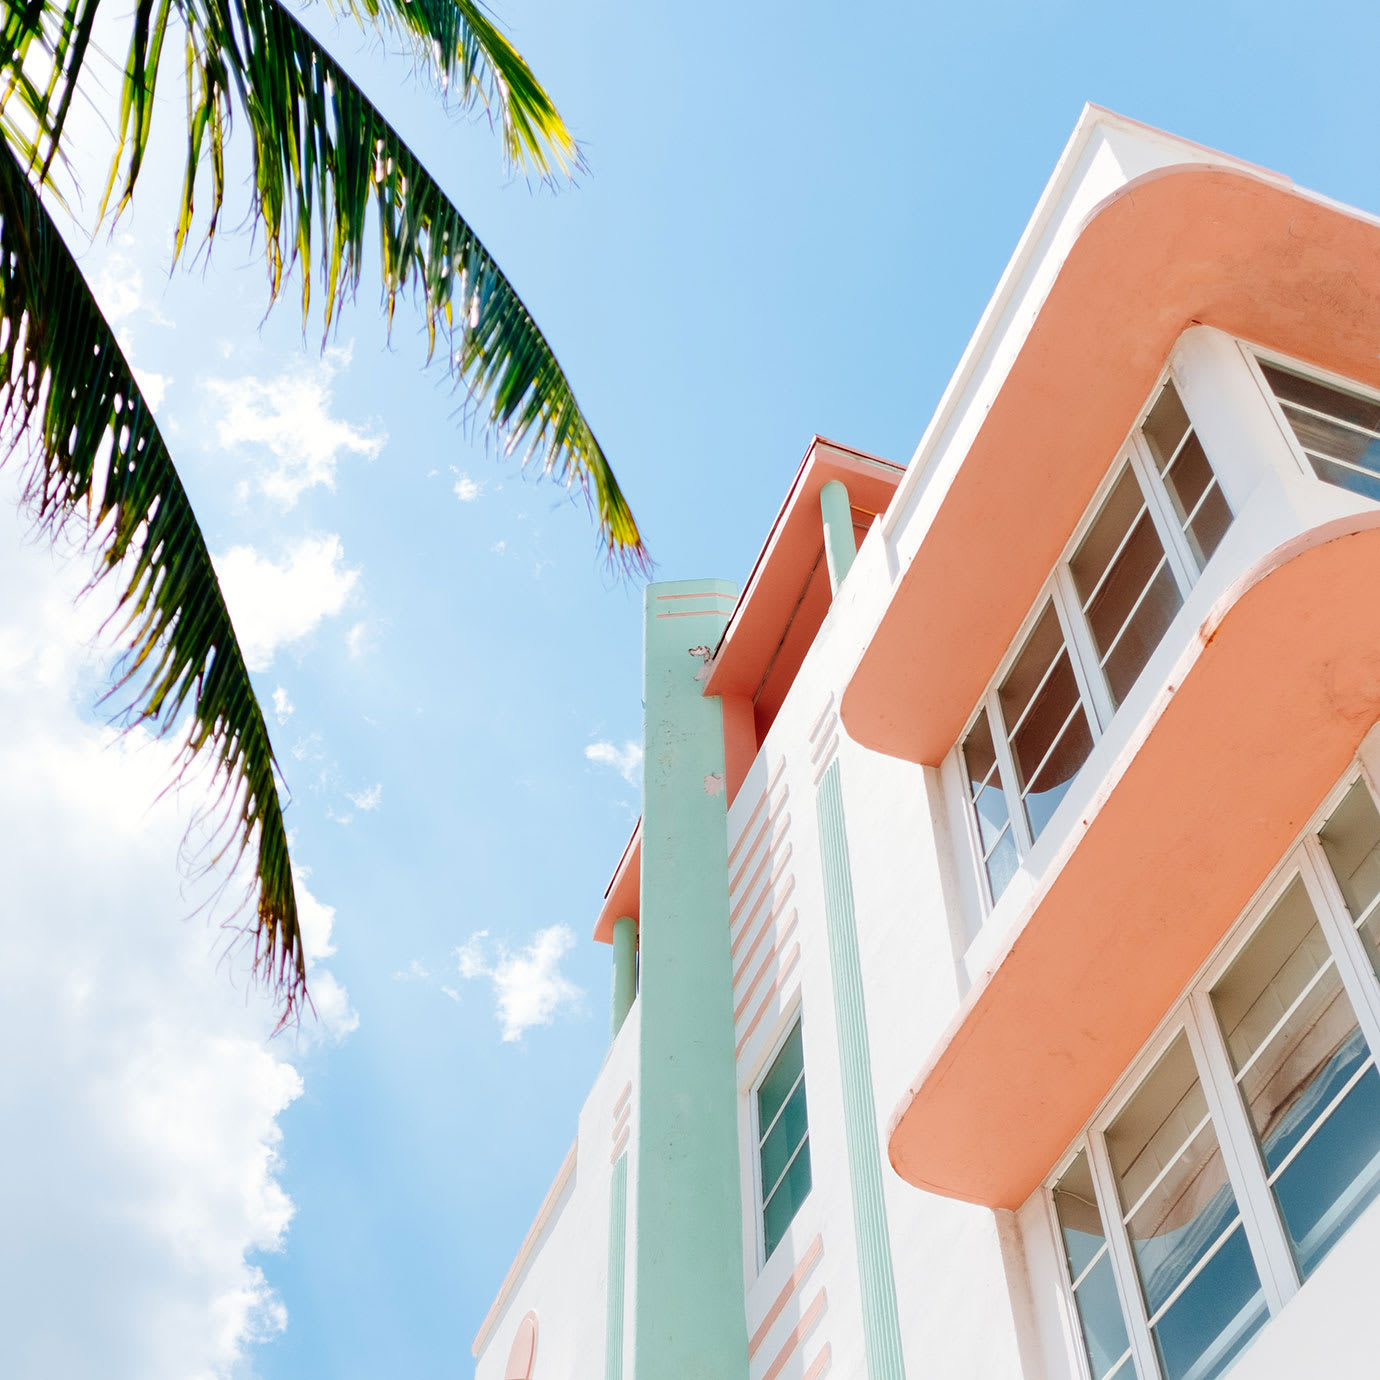 A colourful art deco building and a palm tree.